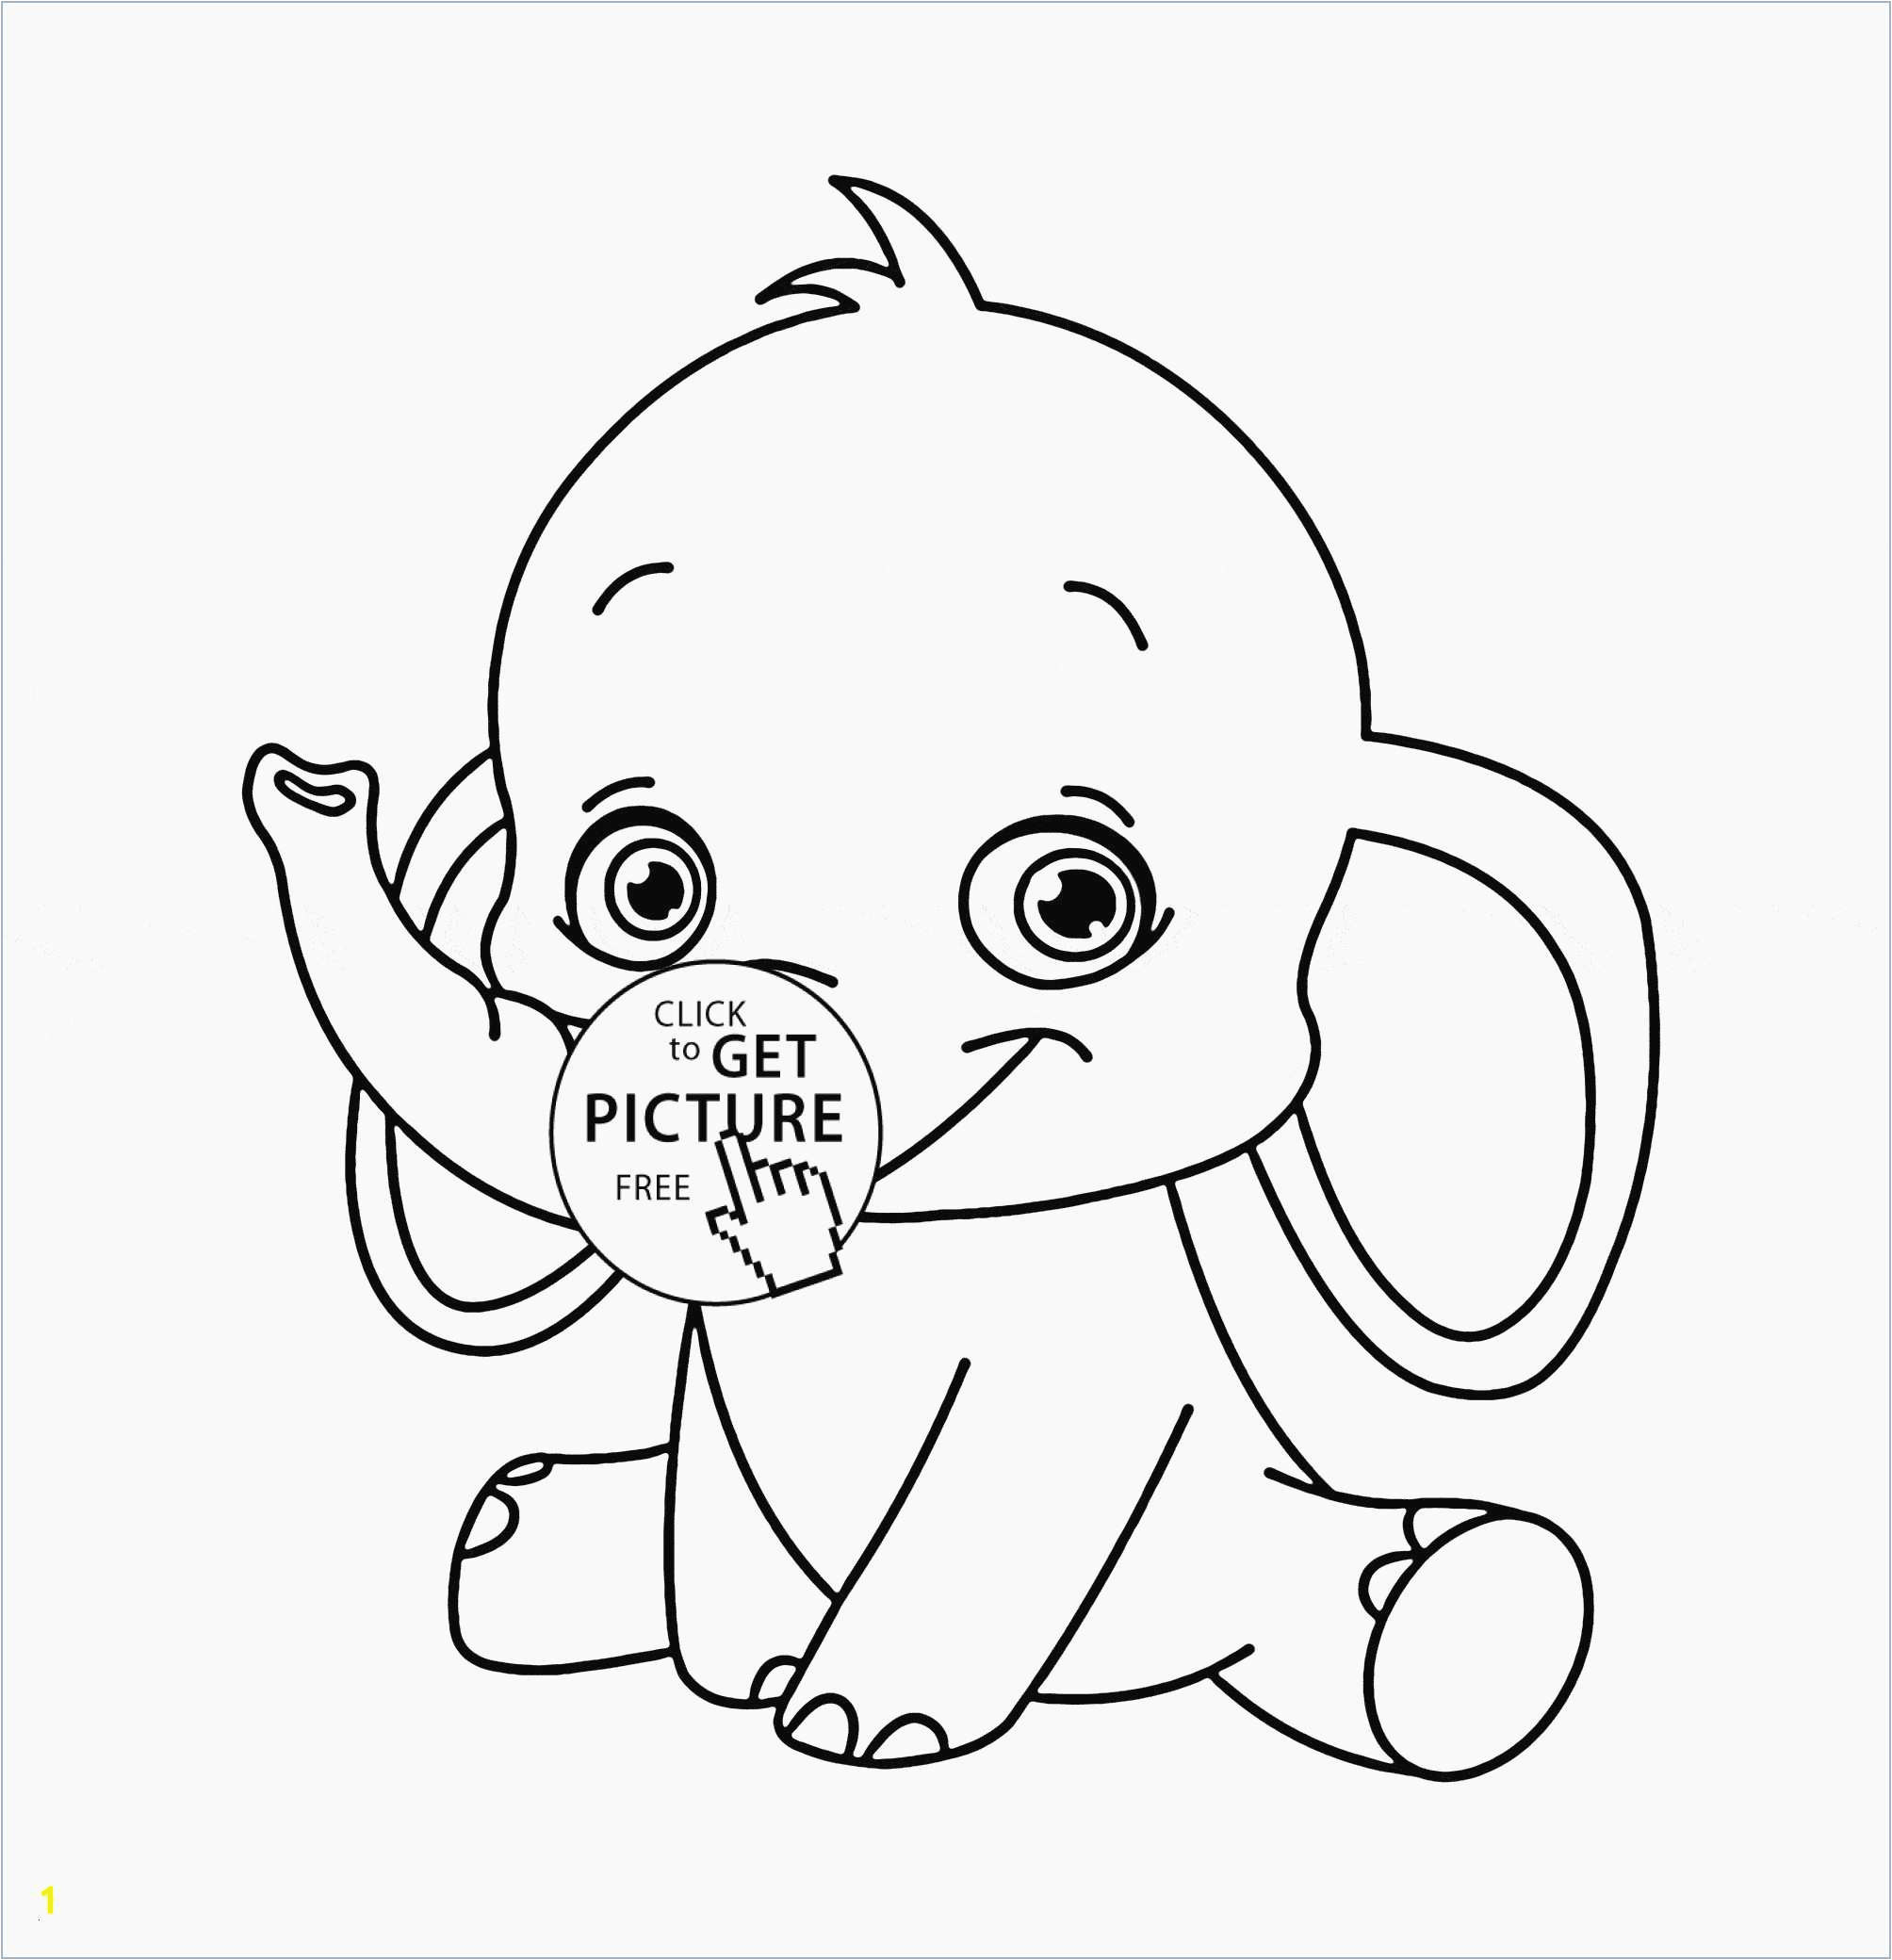 Cute Baby Animal Coloring Pages Dragoart Animal Coloring Pages Amazing 15 Fresh Coloring Pages 3d